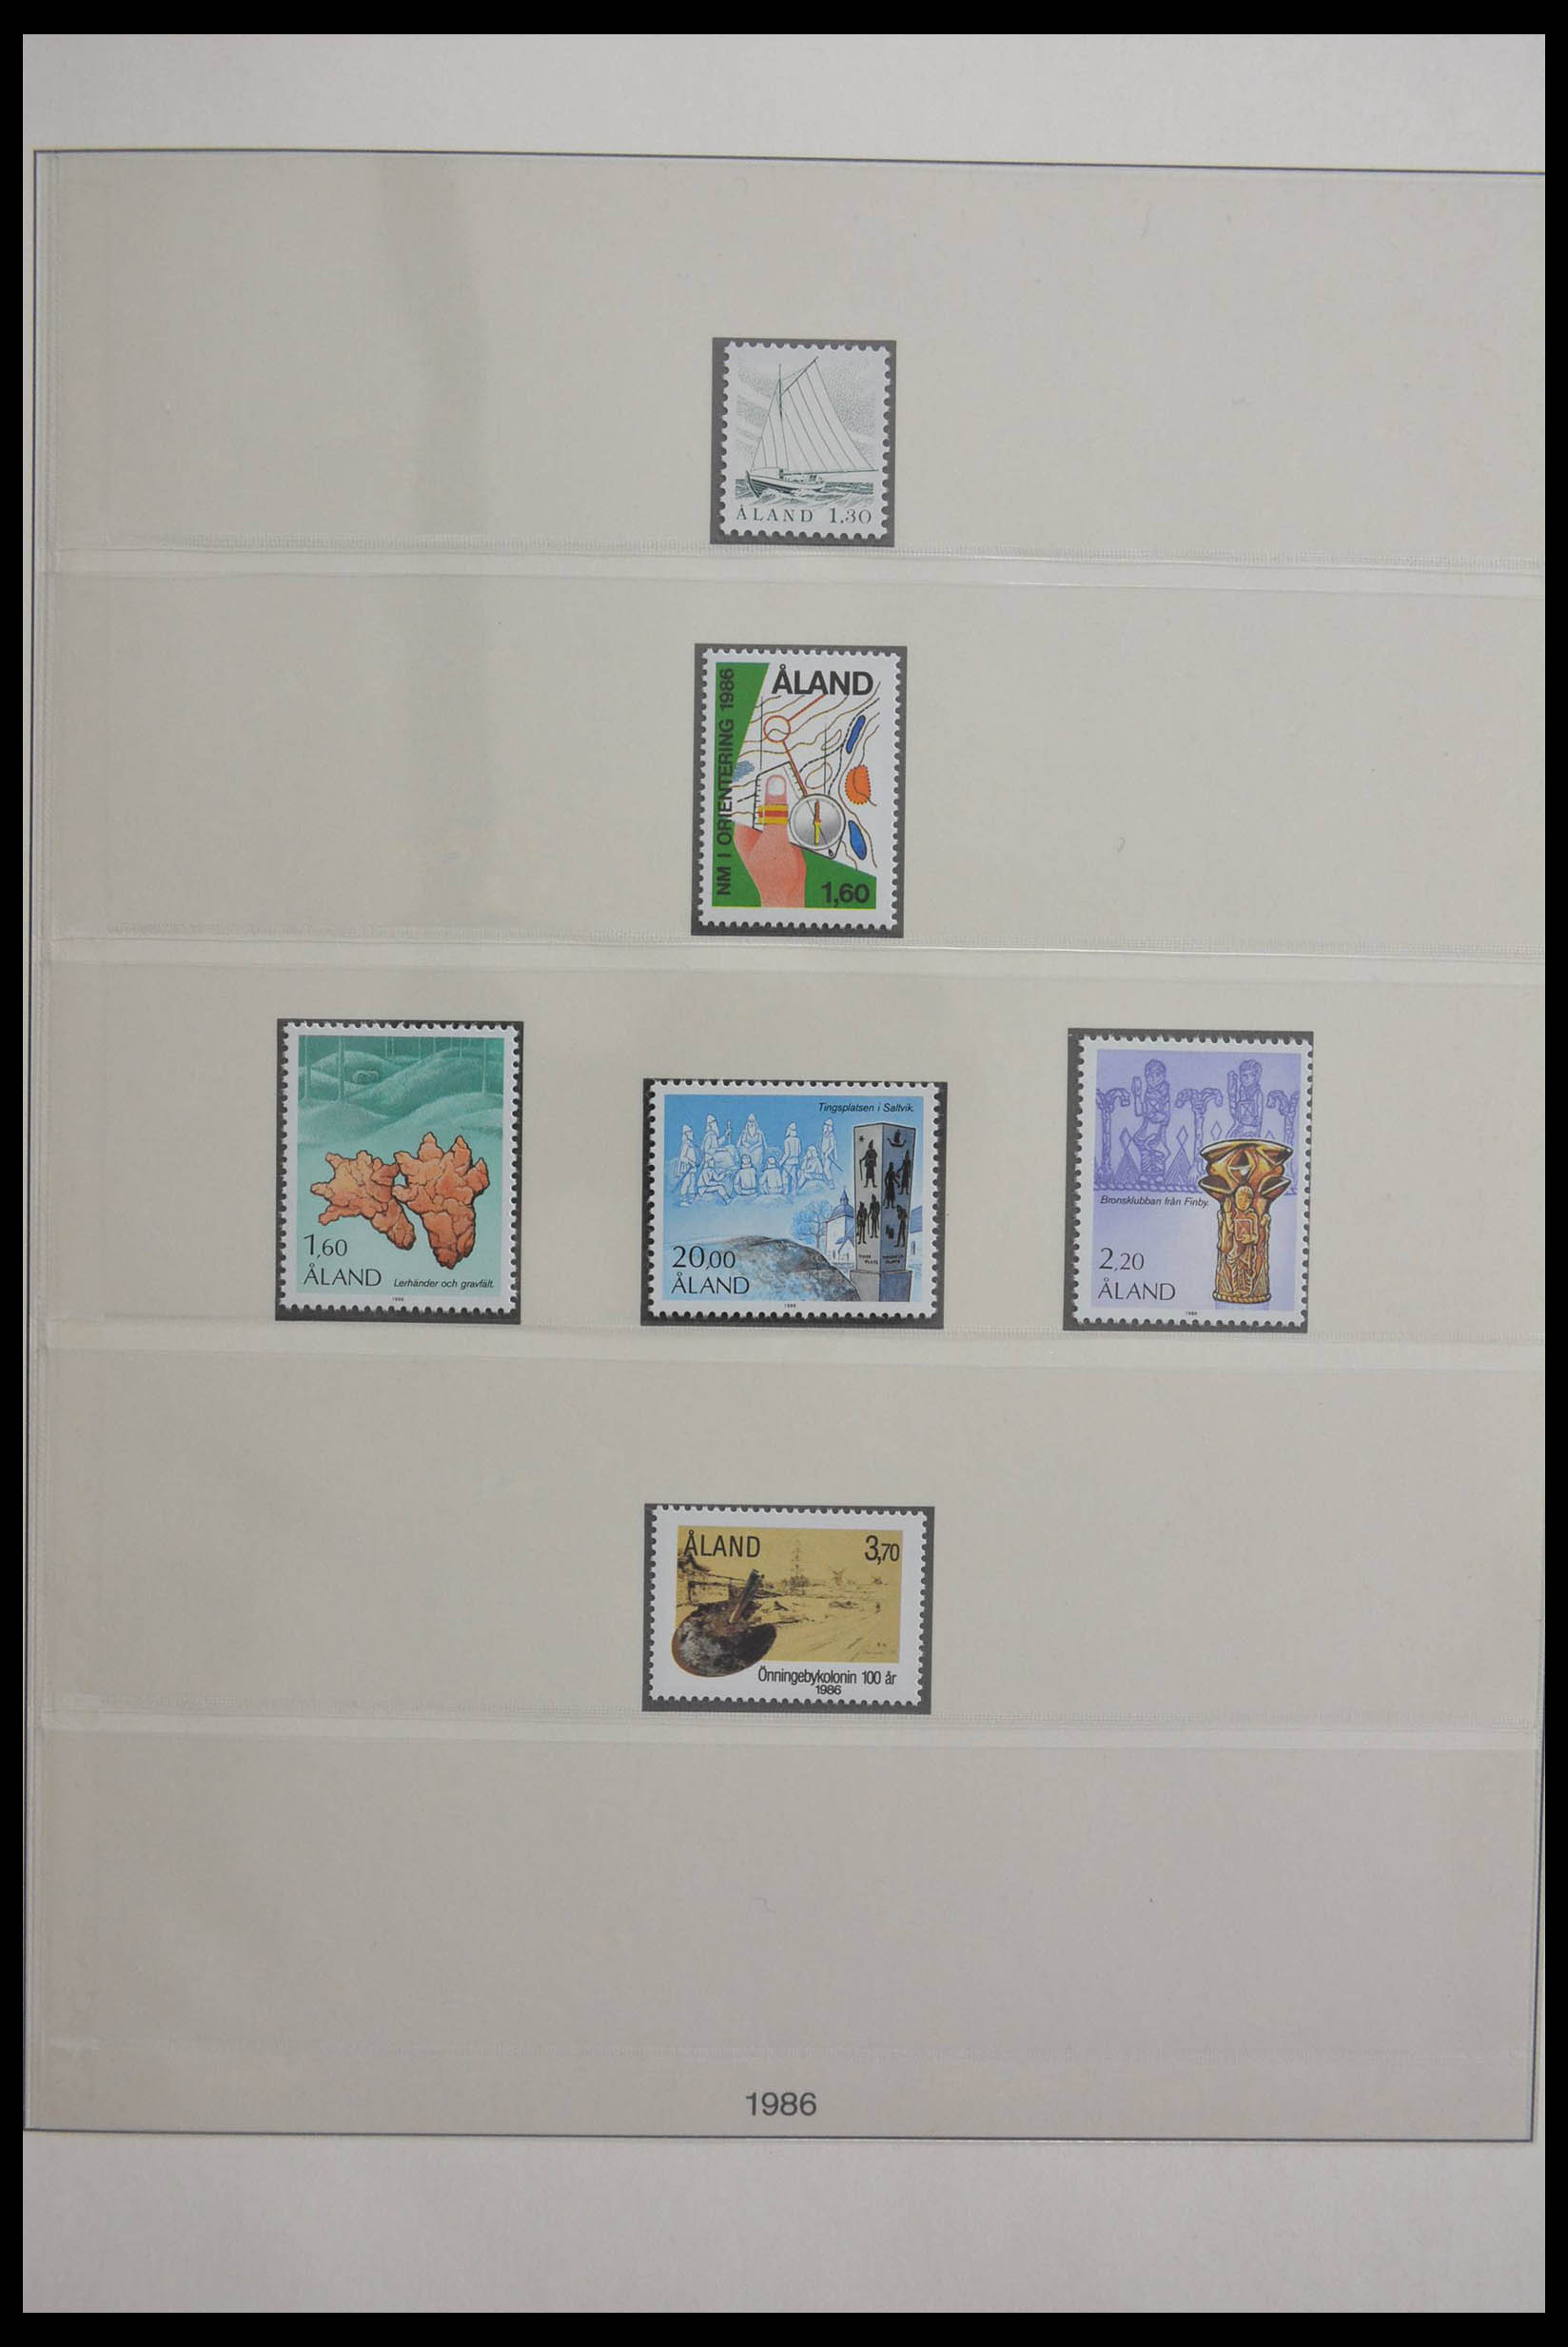 28584 003 - Stamp collection 28584 Aland 1984-2011.